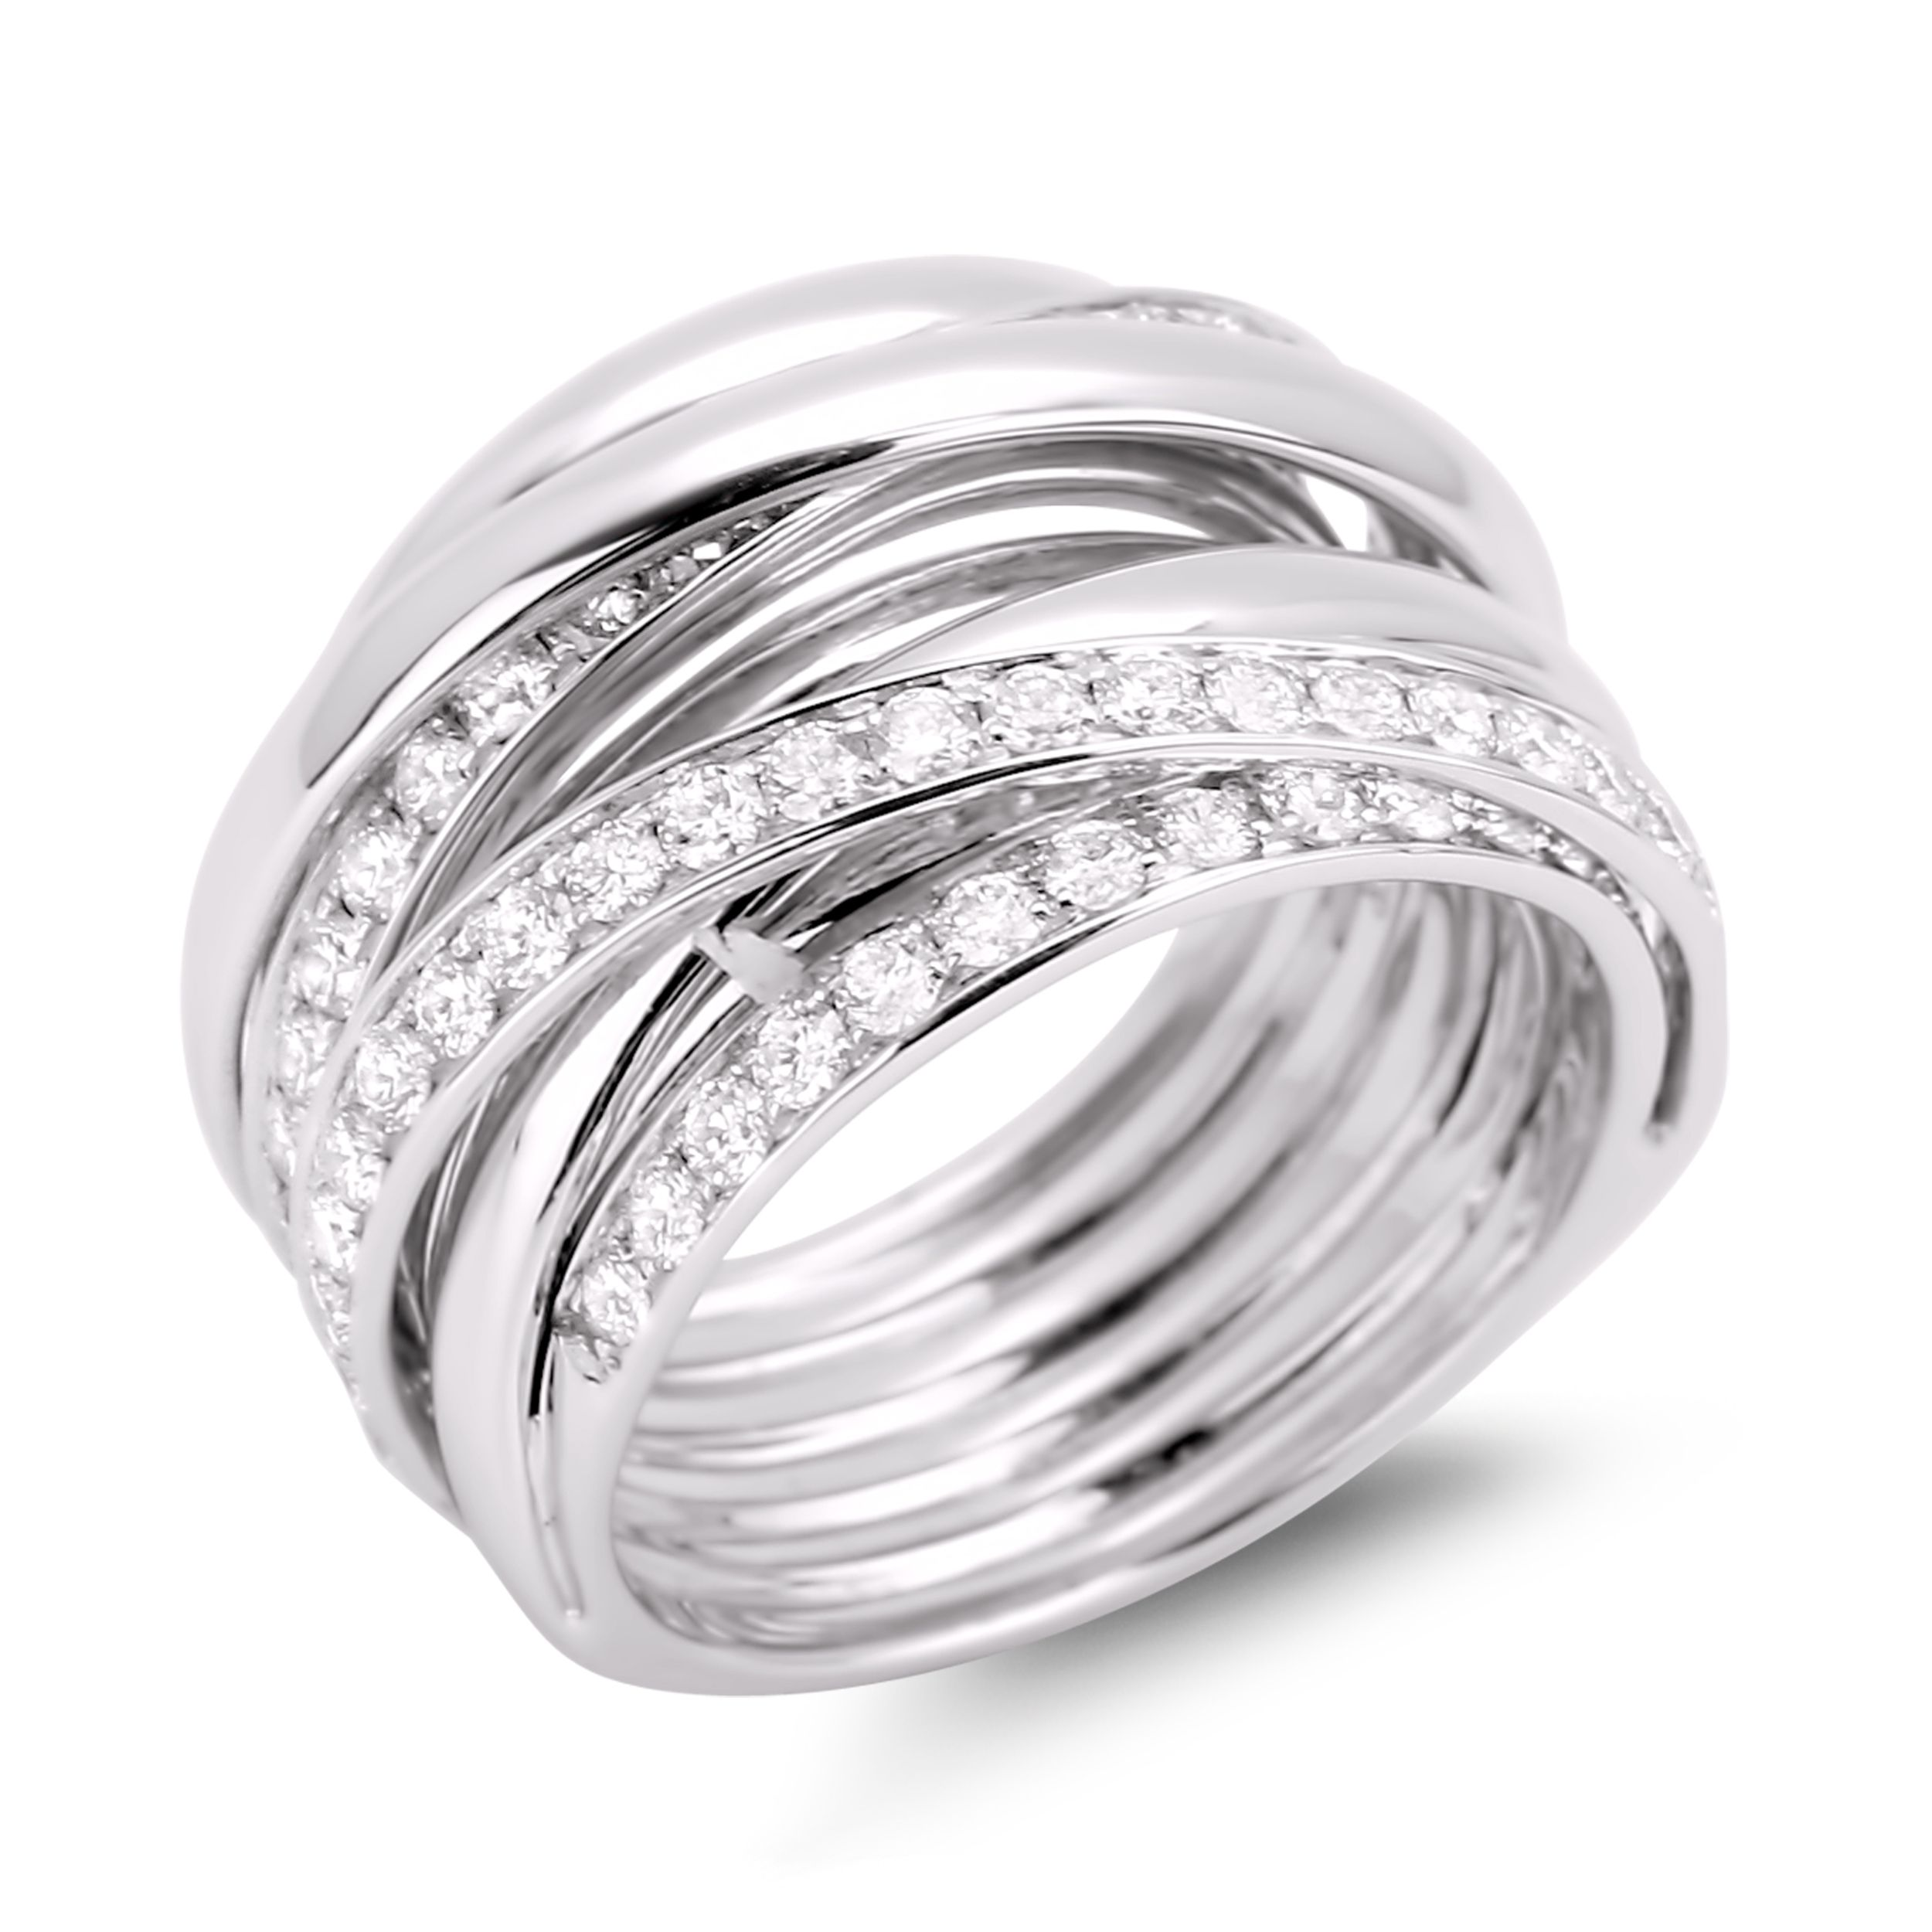 jewellery anniversary heroulo special diamond beautiful choice event stunning bands for rings her com